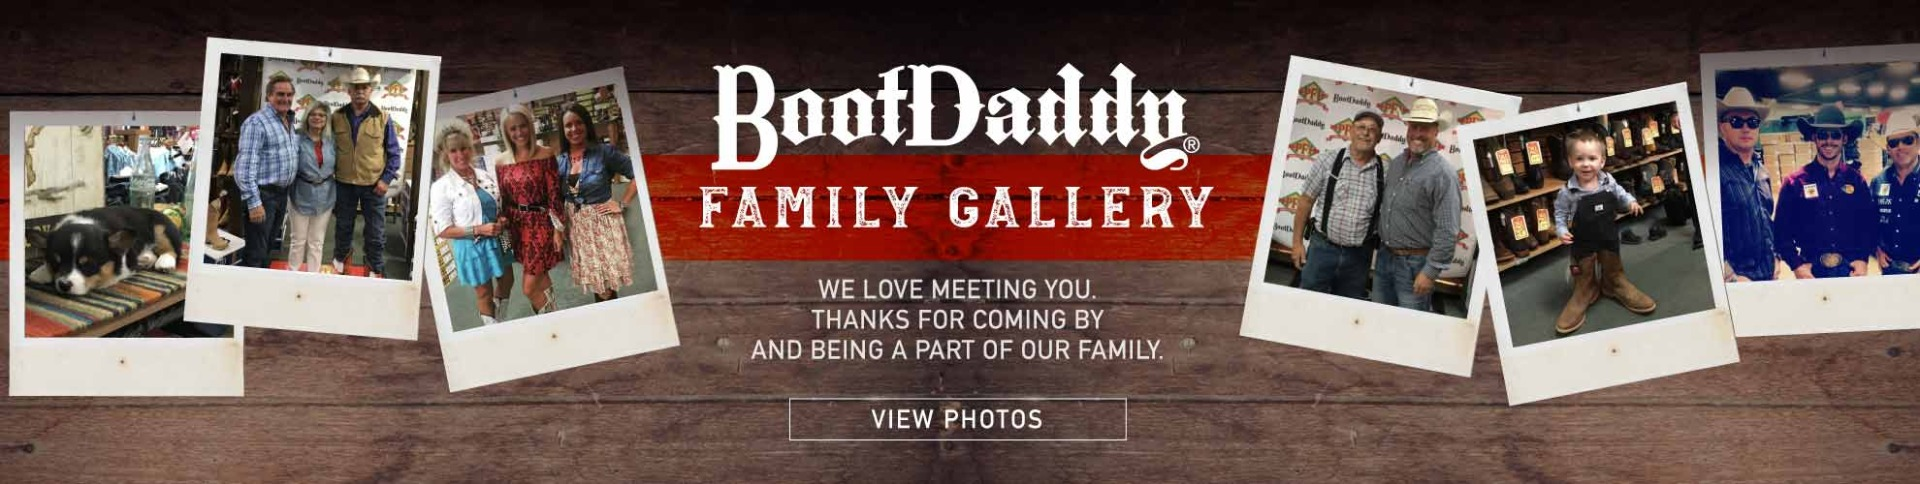 BootDaddy Family Gallery